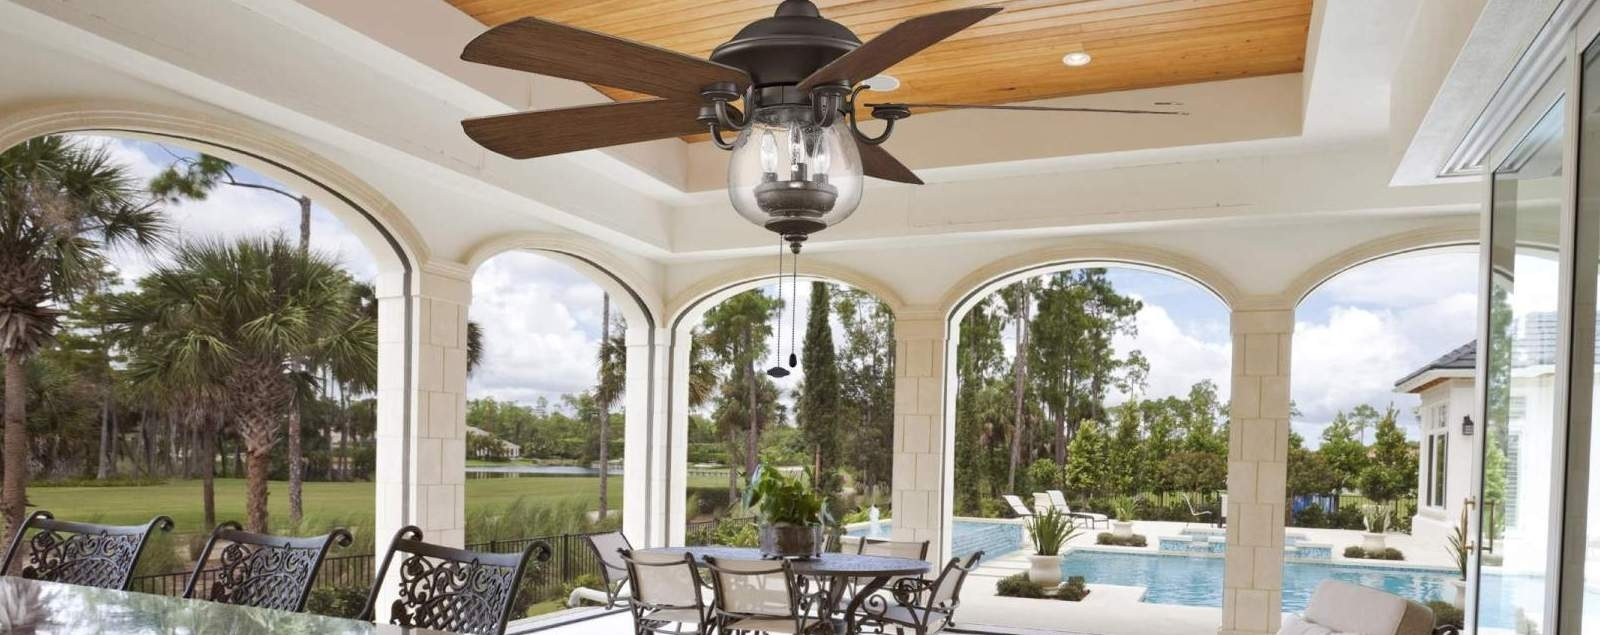 Outdoor Ceiling Fans – Shop Wet, Dry, And Damp Rated Outdoor Fans Throughout Most Recent Outdoor Porch Ceiling Fans With Lights (View 2 of 20)